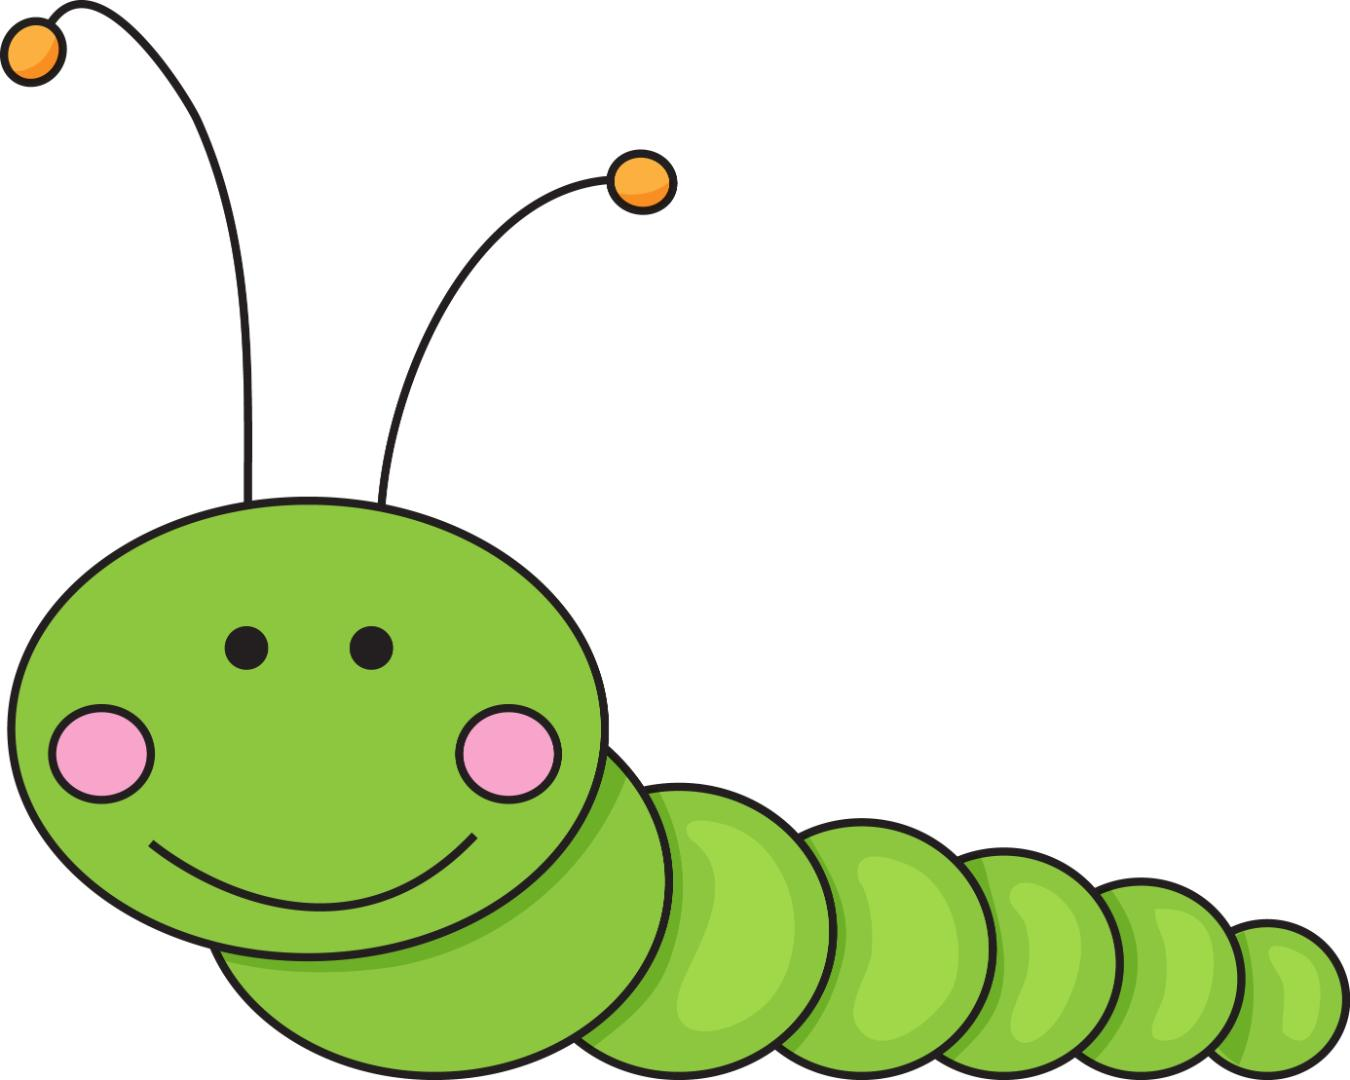 green-cute-caterpillar-clipart-the-cliparts-throughout-cute-caterpillar-clipart[1](3)